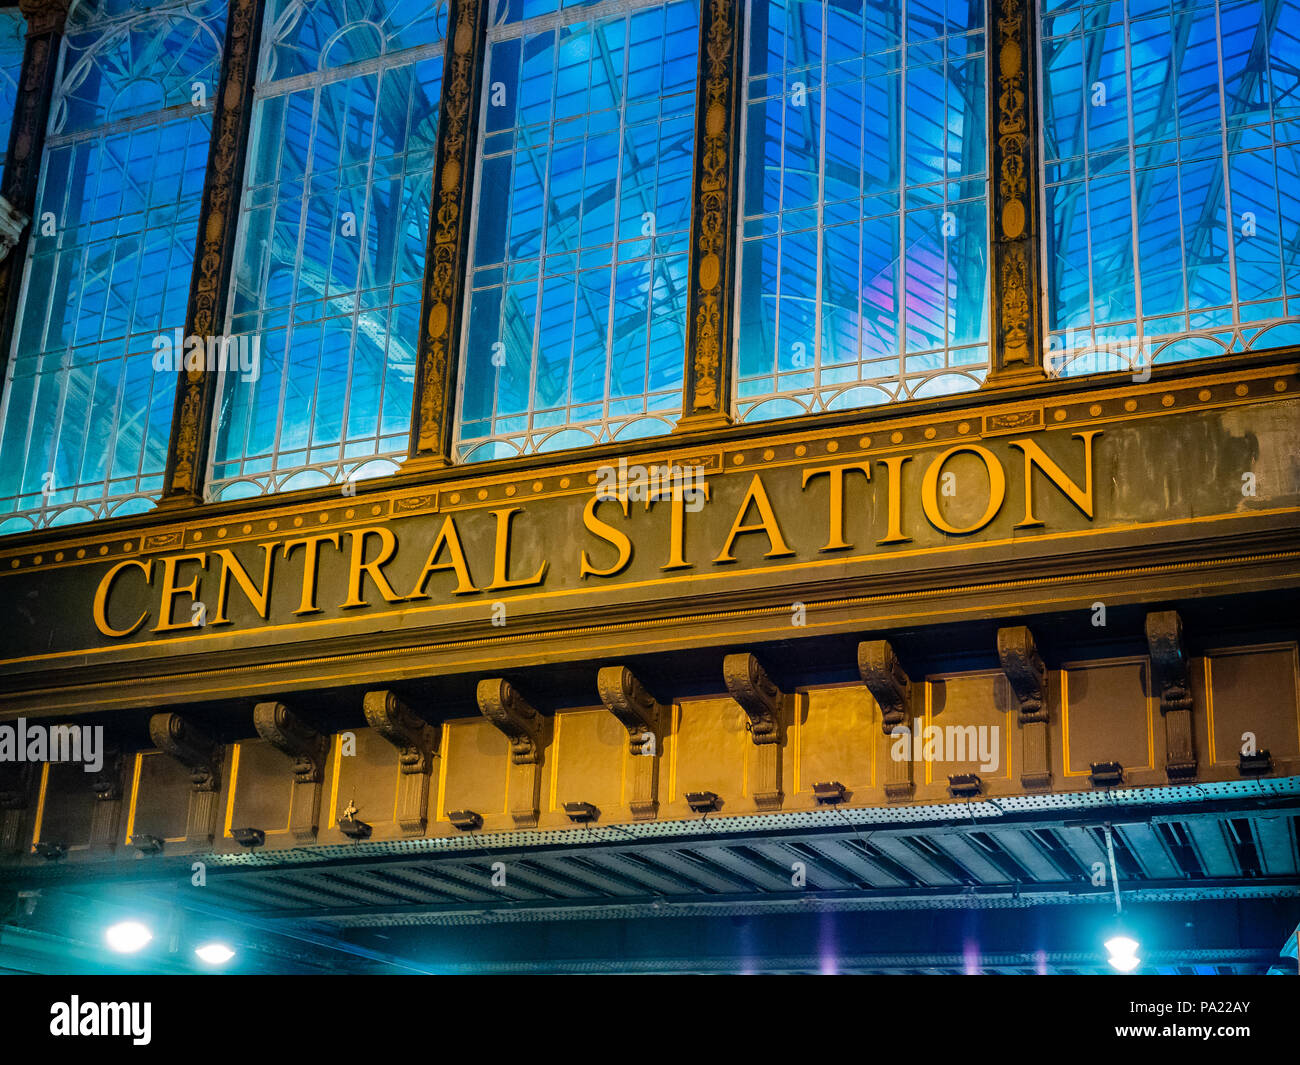 Central Station sign at night, Glasgow, Scotland, UK. Stock Photo